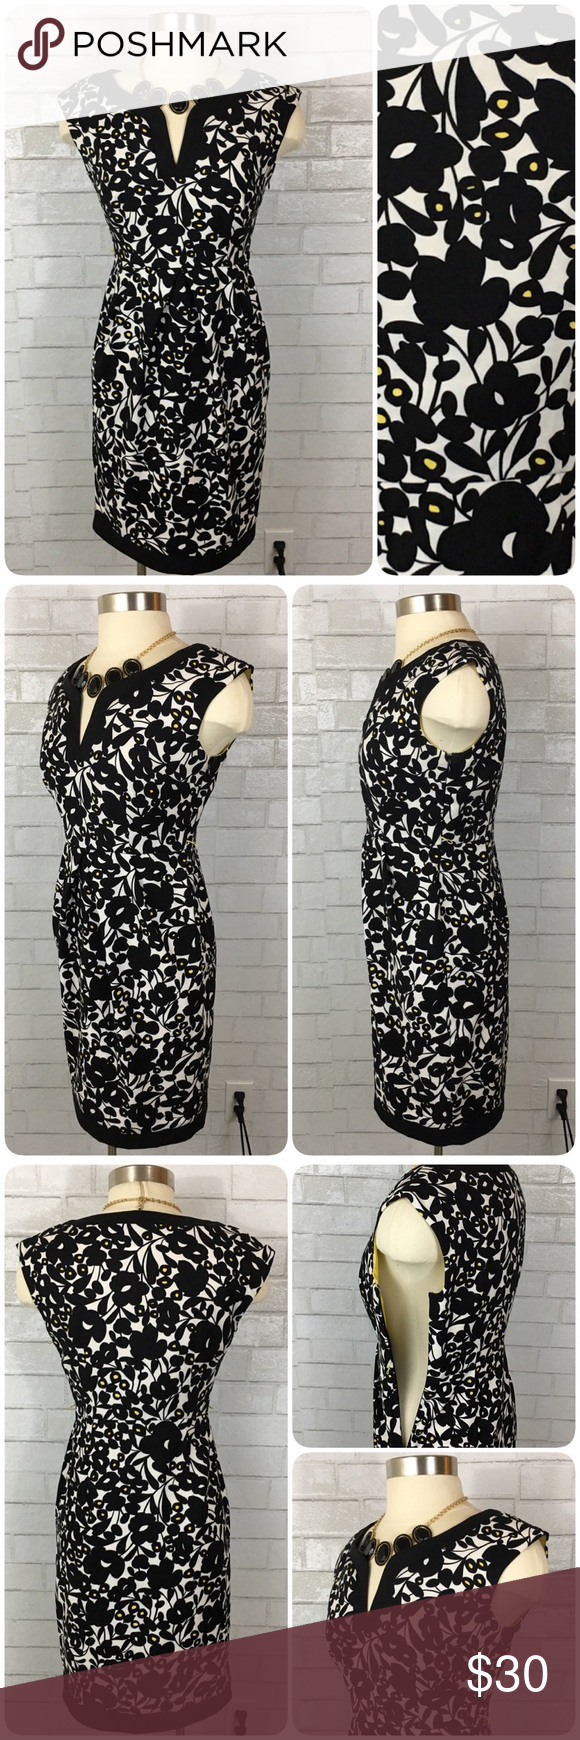 London Times Petites Black White & Yellow Dress 4P This London Times Petites dress is in excellent preowned condition.  It features a v-neckline, empire waist, pleating at the midsection for a flattering fit, knee length classic cut, and an all over black floral print with yellow highlights. Belt loops for a small belt; belt not included. London Times Dresses Midi